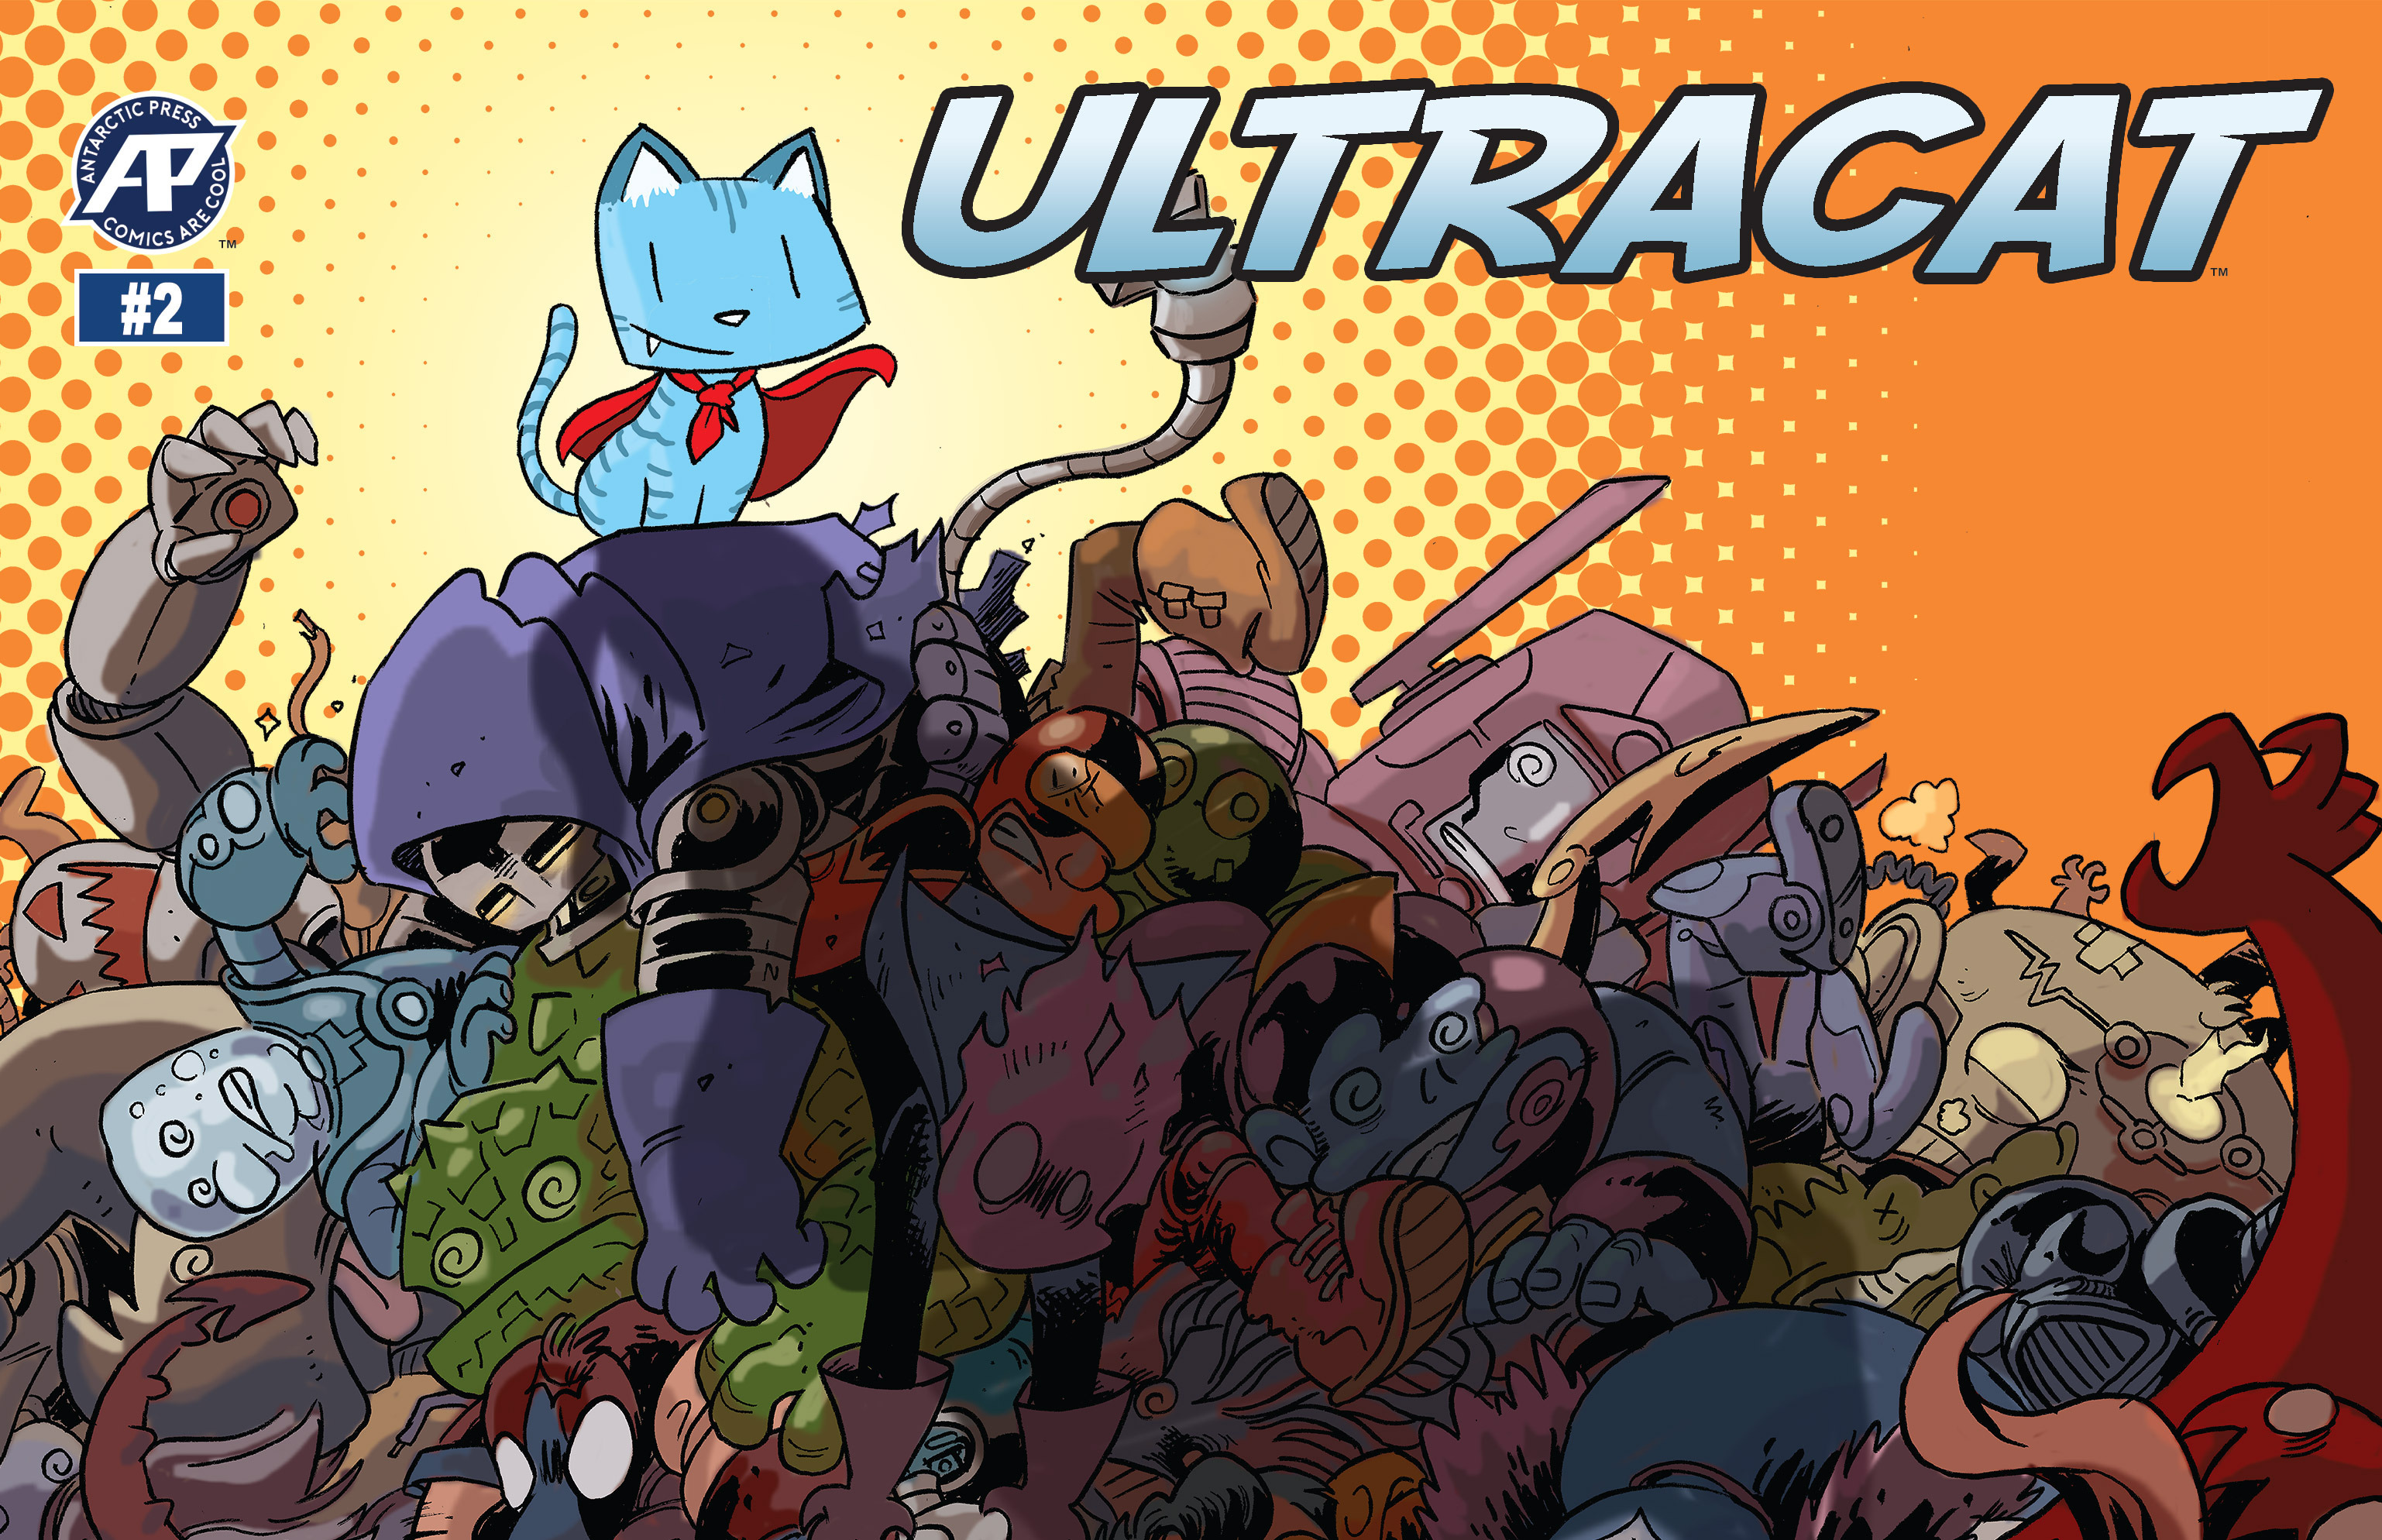 Read online Ultracat comic -  Issue #2 - 1